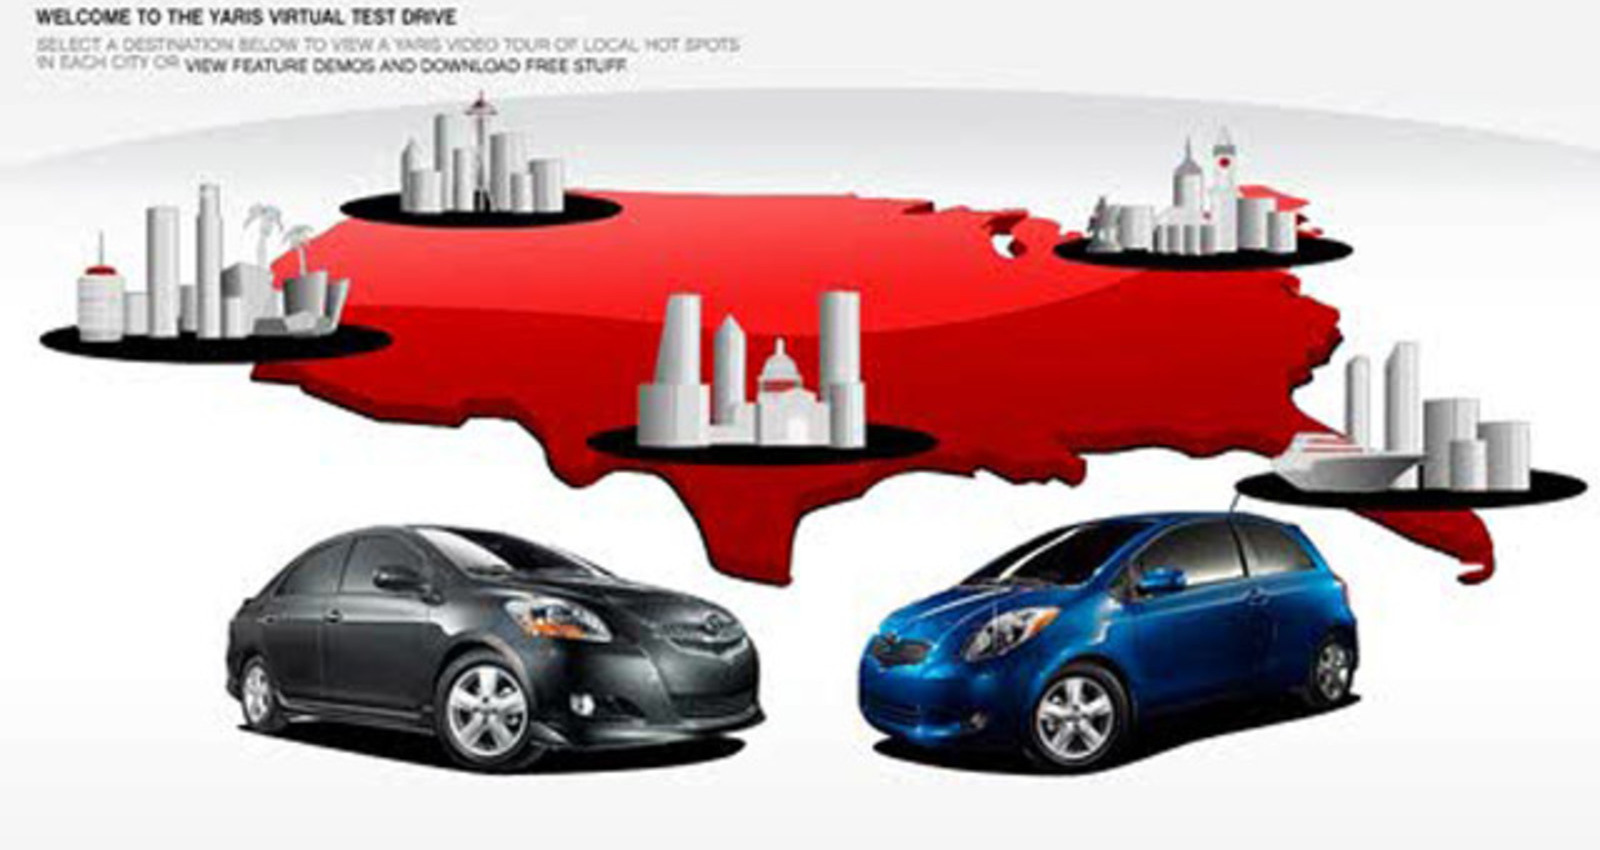 Yaris Web Site